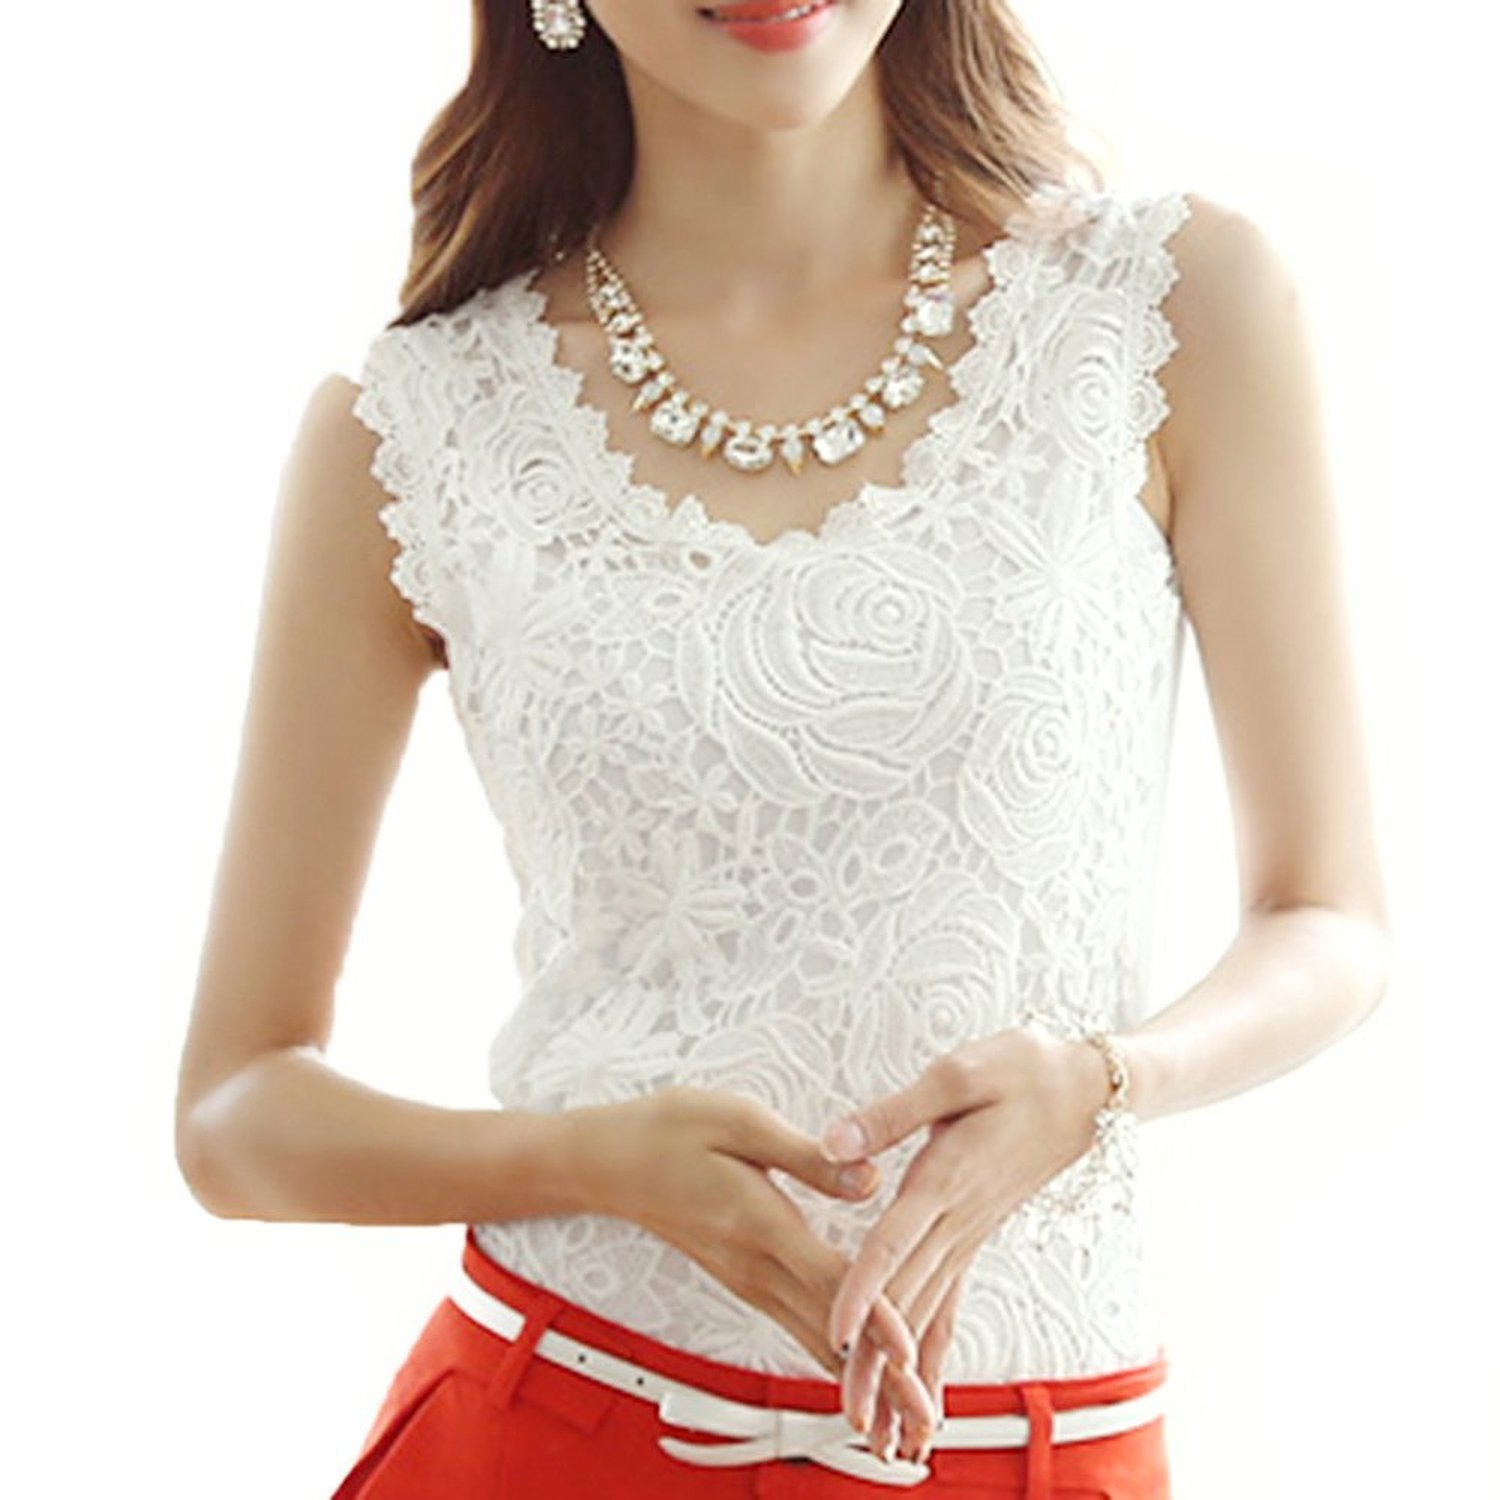 Amoin Women Lace Floral Crochet Knit Vest Tank Top Shirt manas